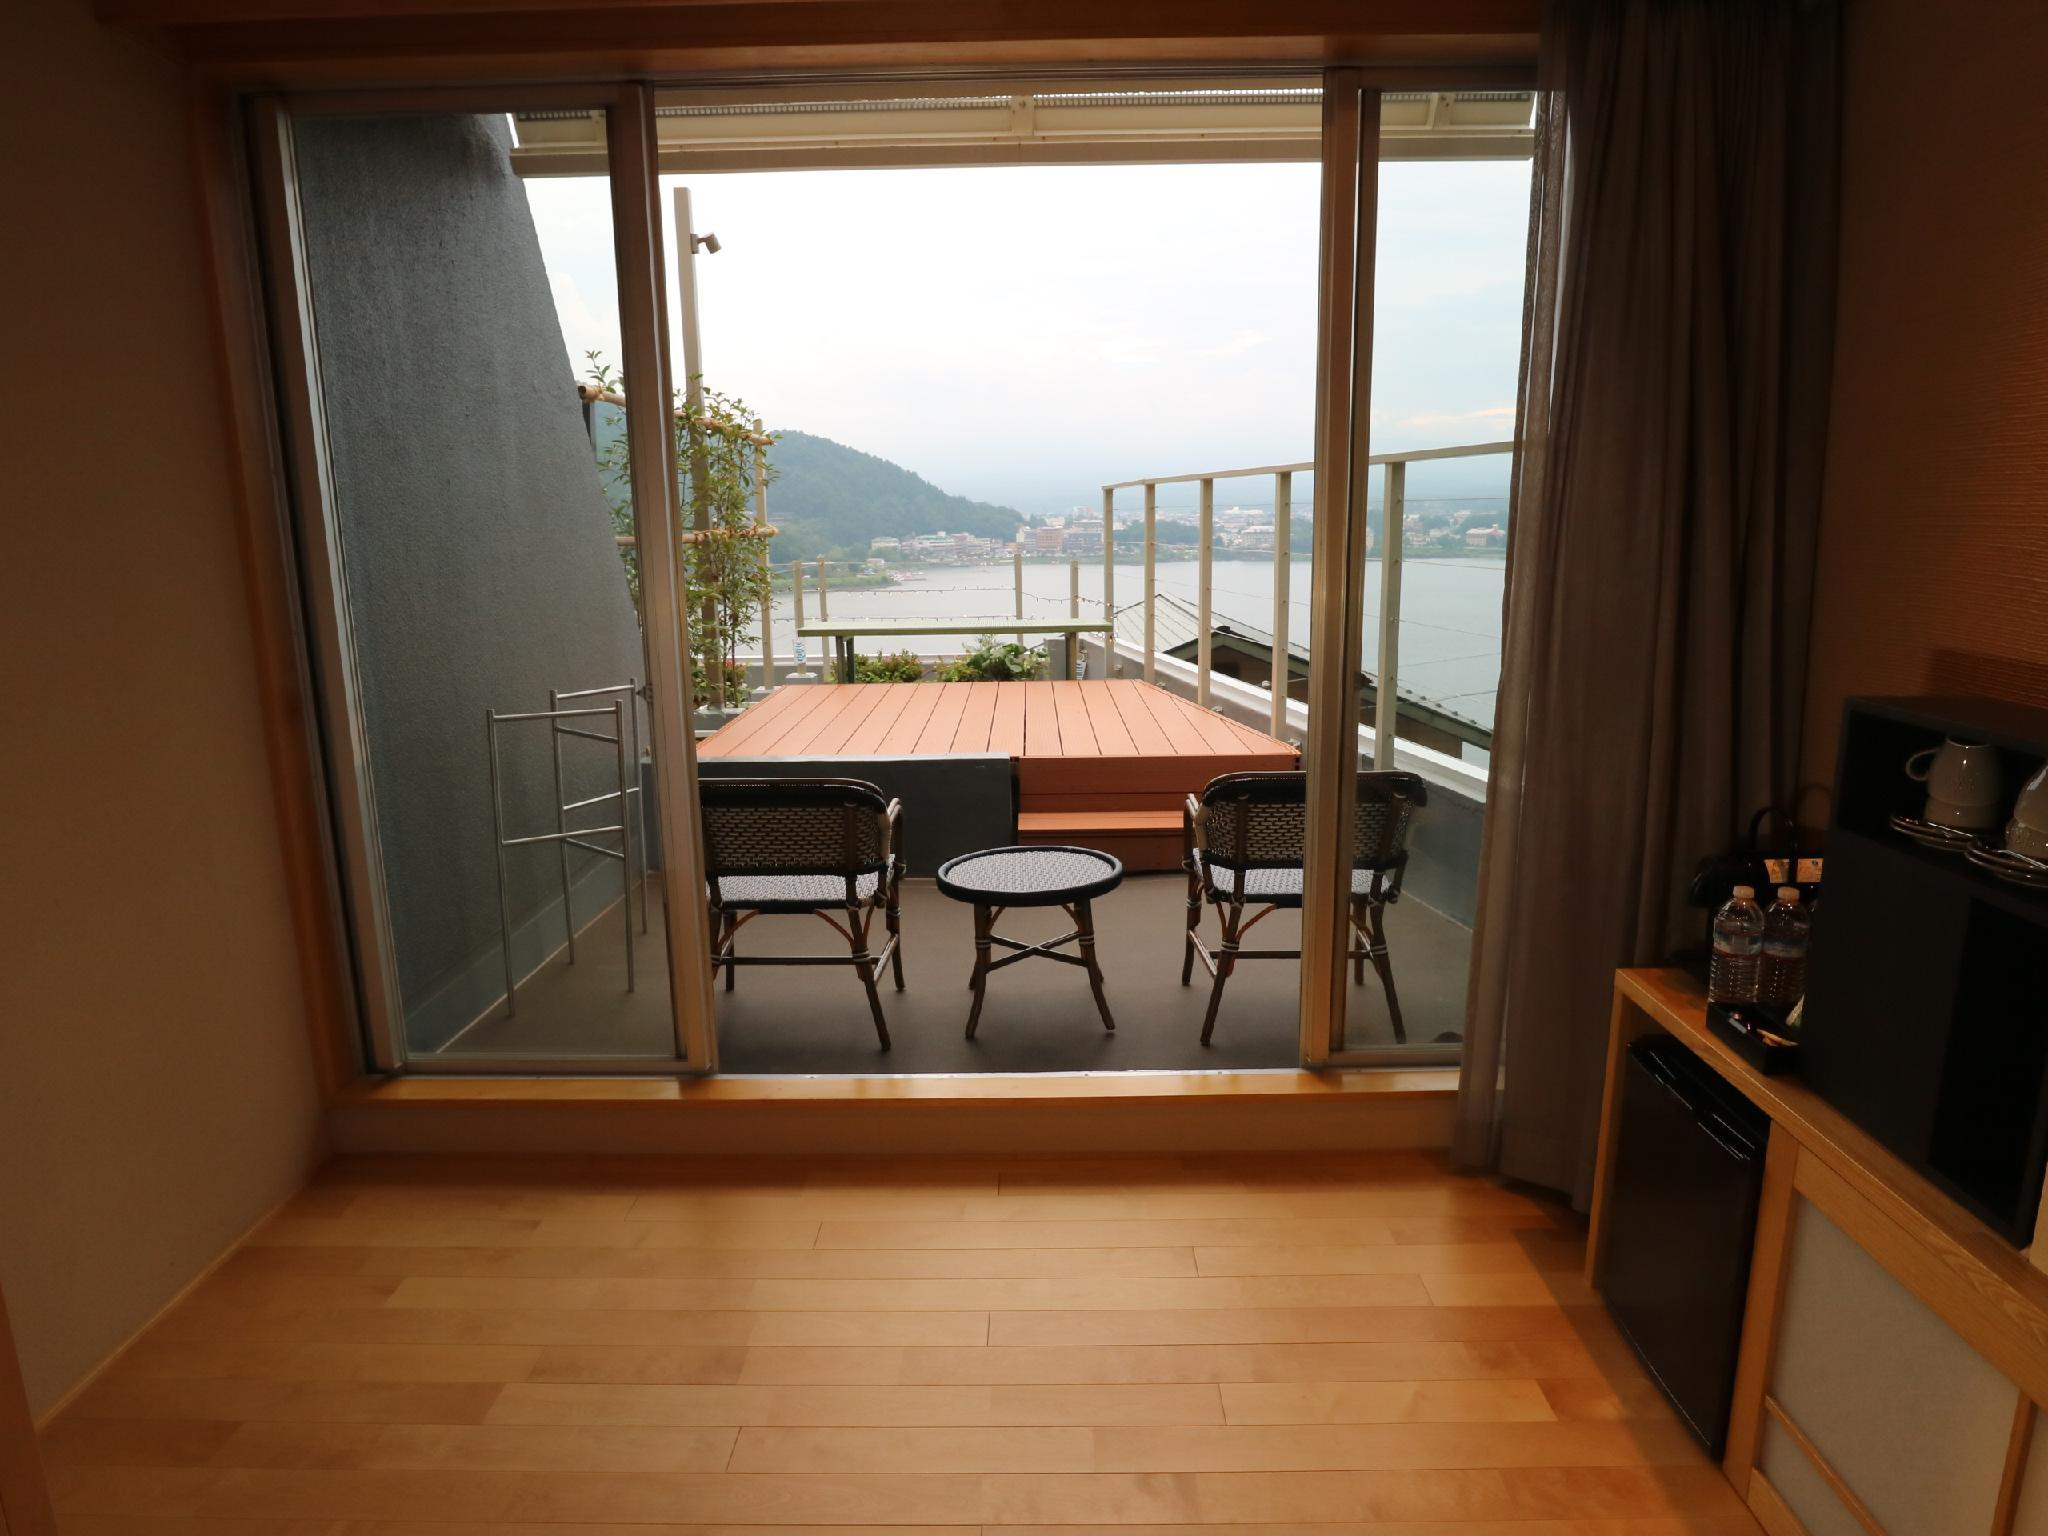 Mount Fuji and Lake View Japanese Style Room 1 for 4 People with Balcony - Non-Smoking